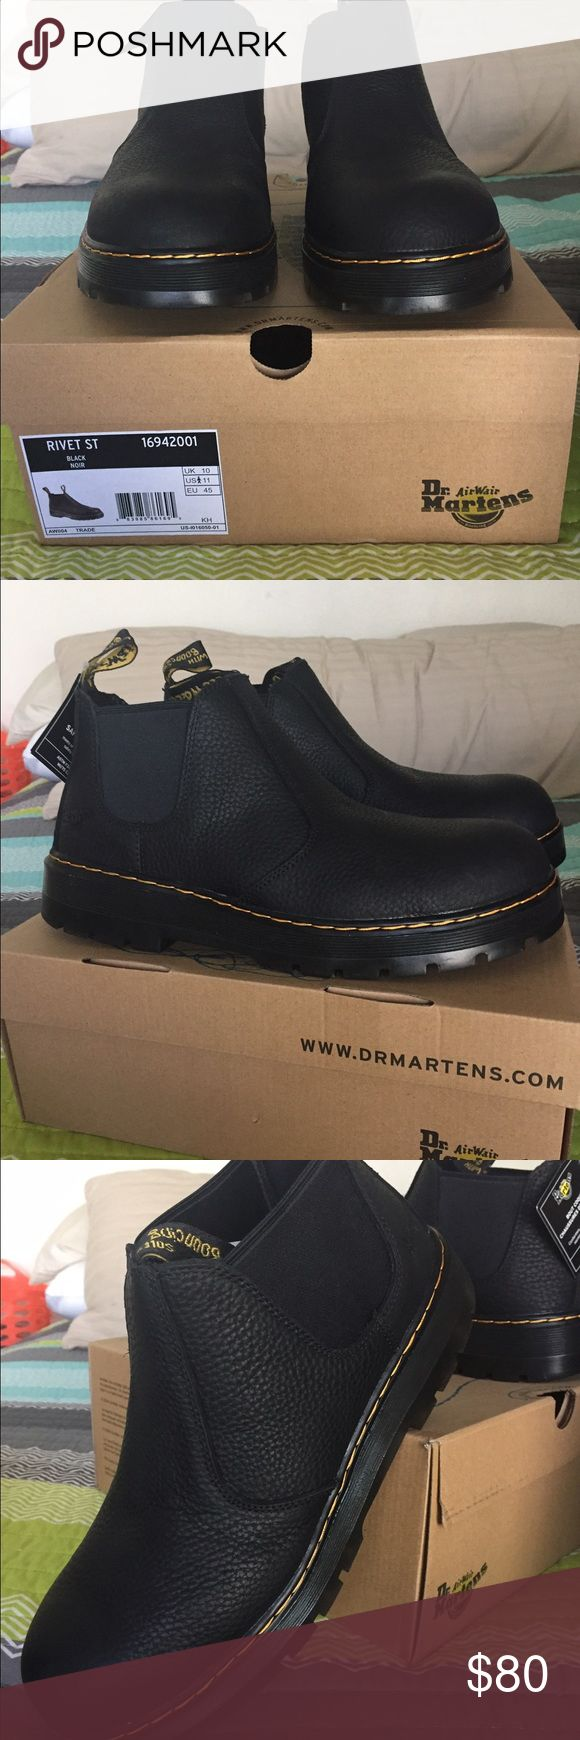 Dr. Martens Men's Steel Toe Boots Size 11 Brand New, Never Worn. Dr. Martens Shoes Boots